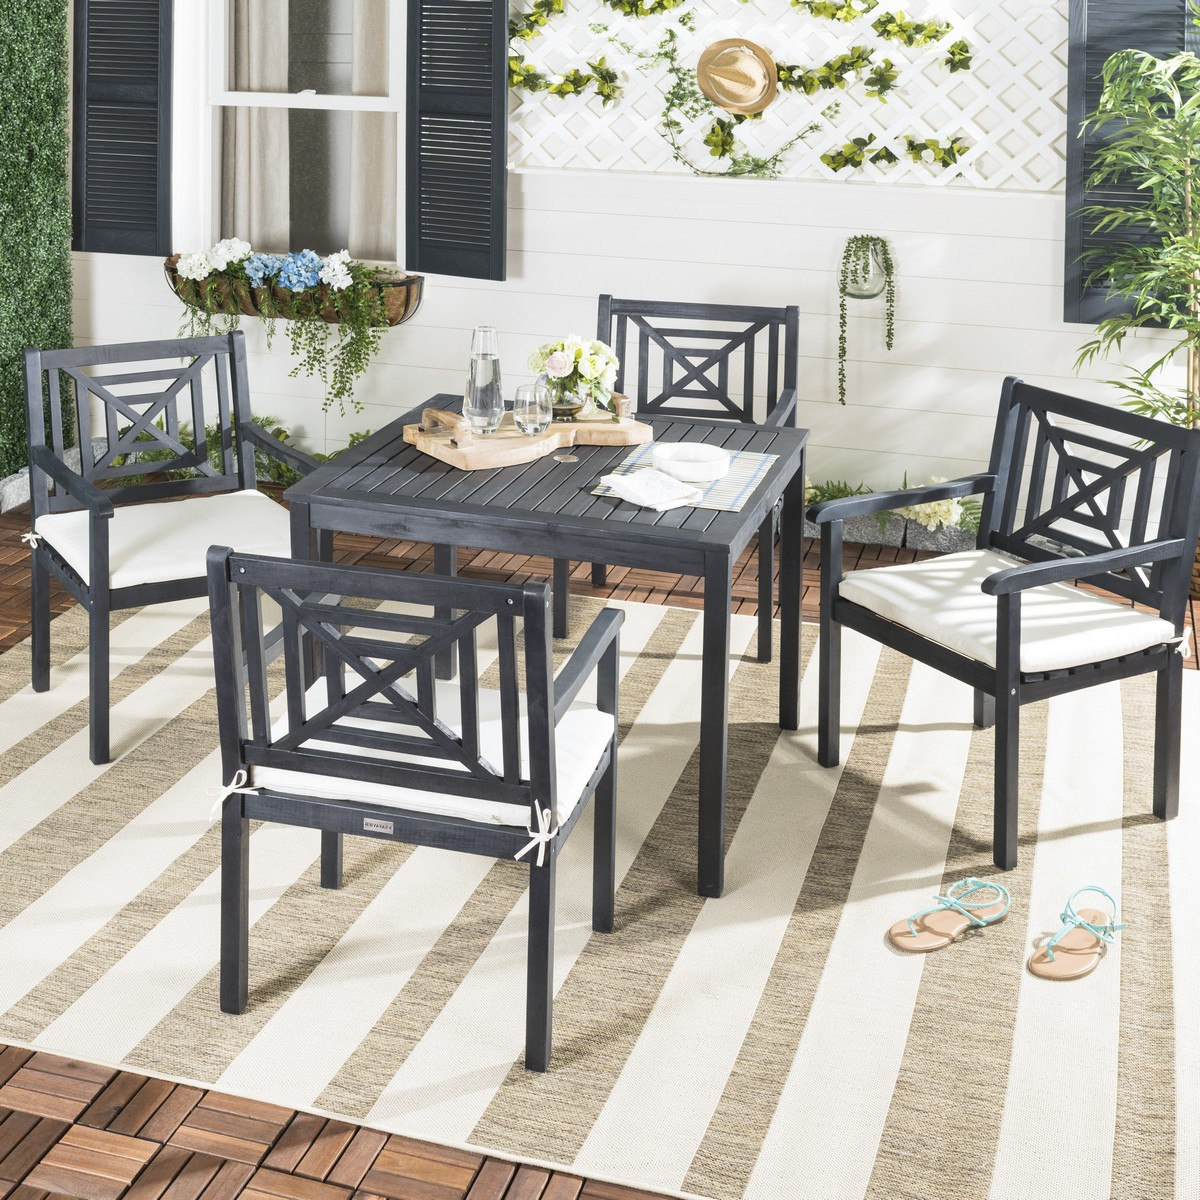 Pat6722k Patio Sets – 5 Piece Outdoor Dining Sets – Furniture With Most Recently Released Delmar 5 Piece Dining Sets (View 14 of 20)